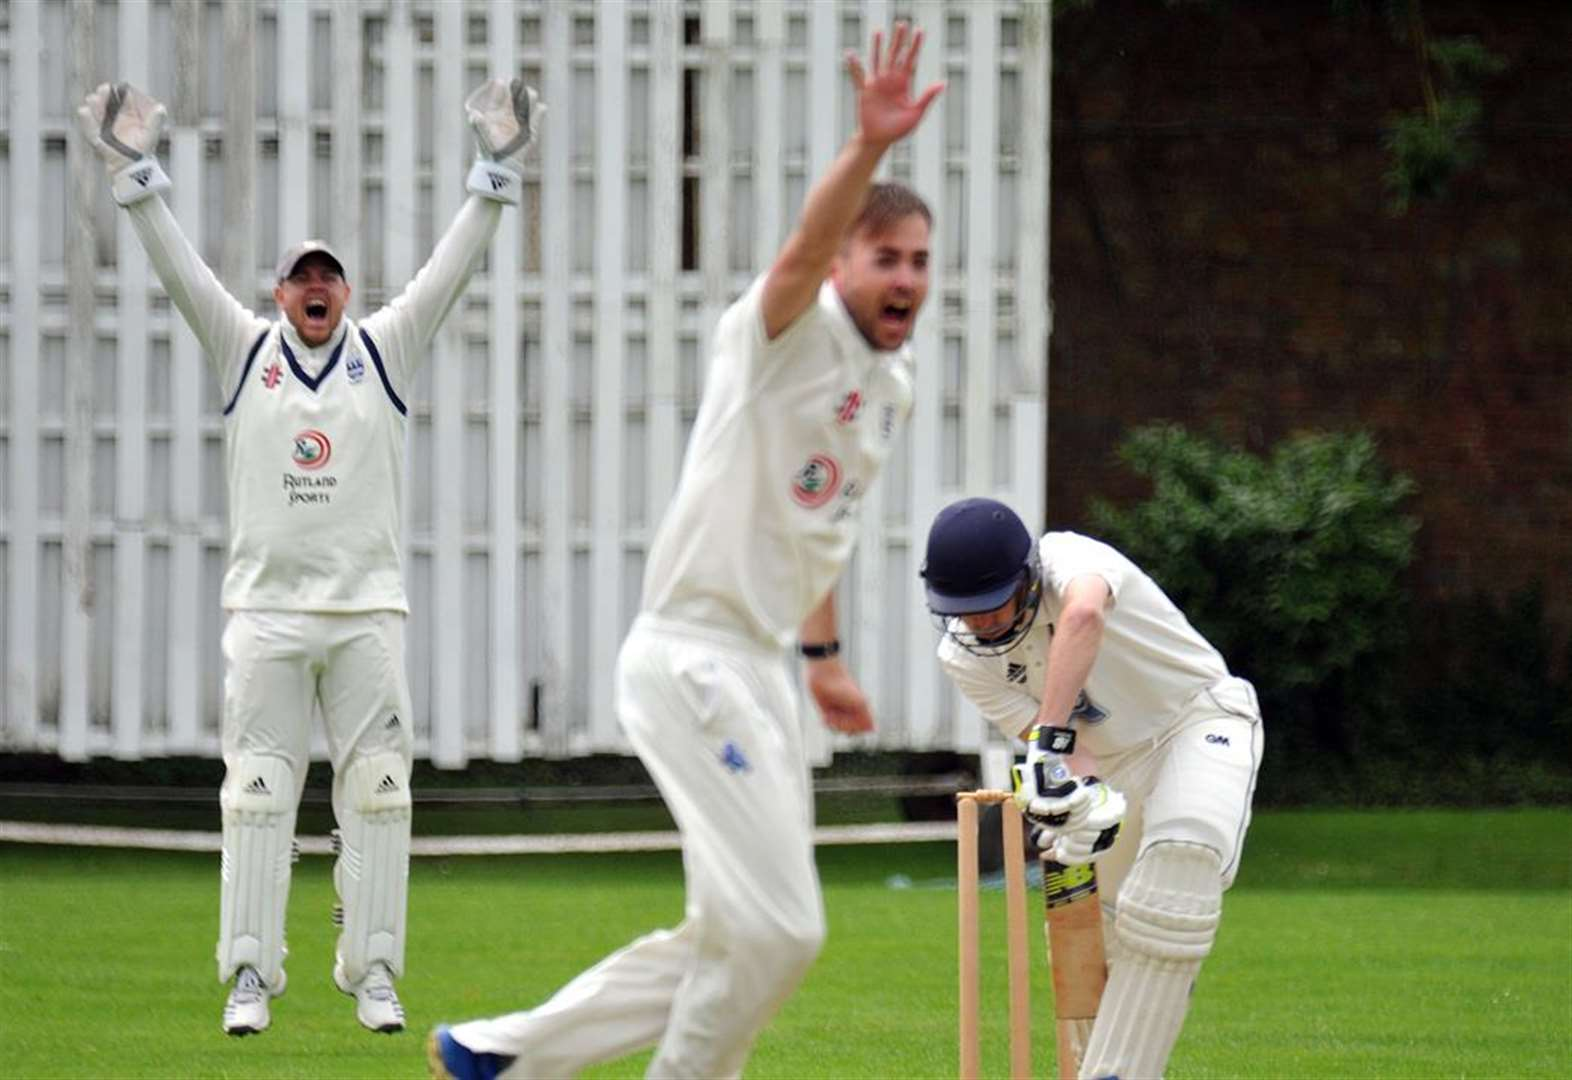 LINCS PREMIER DIVISION: Vital victories as duo aim to finish with a flourish